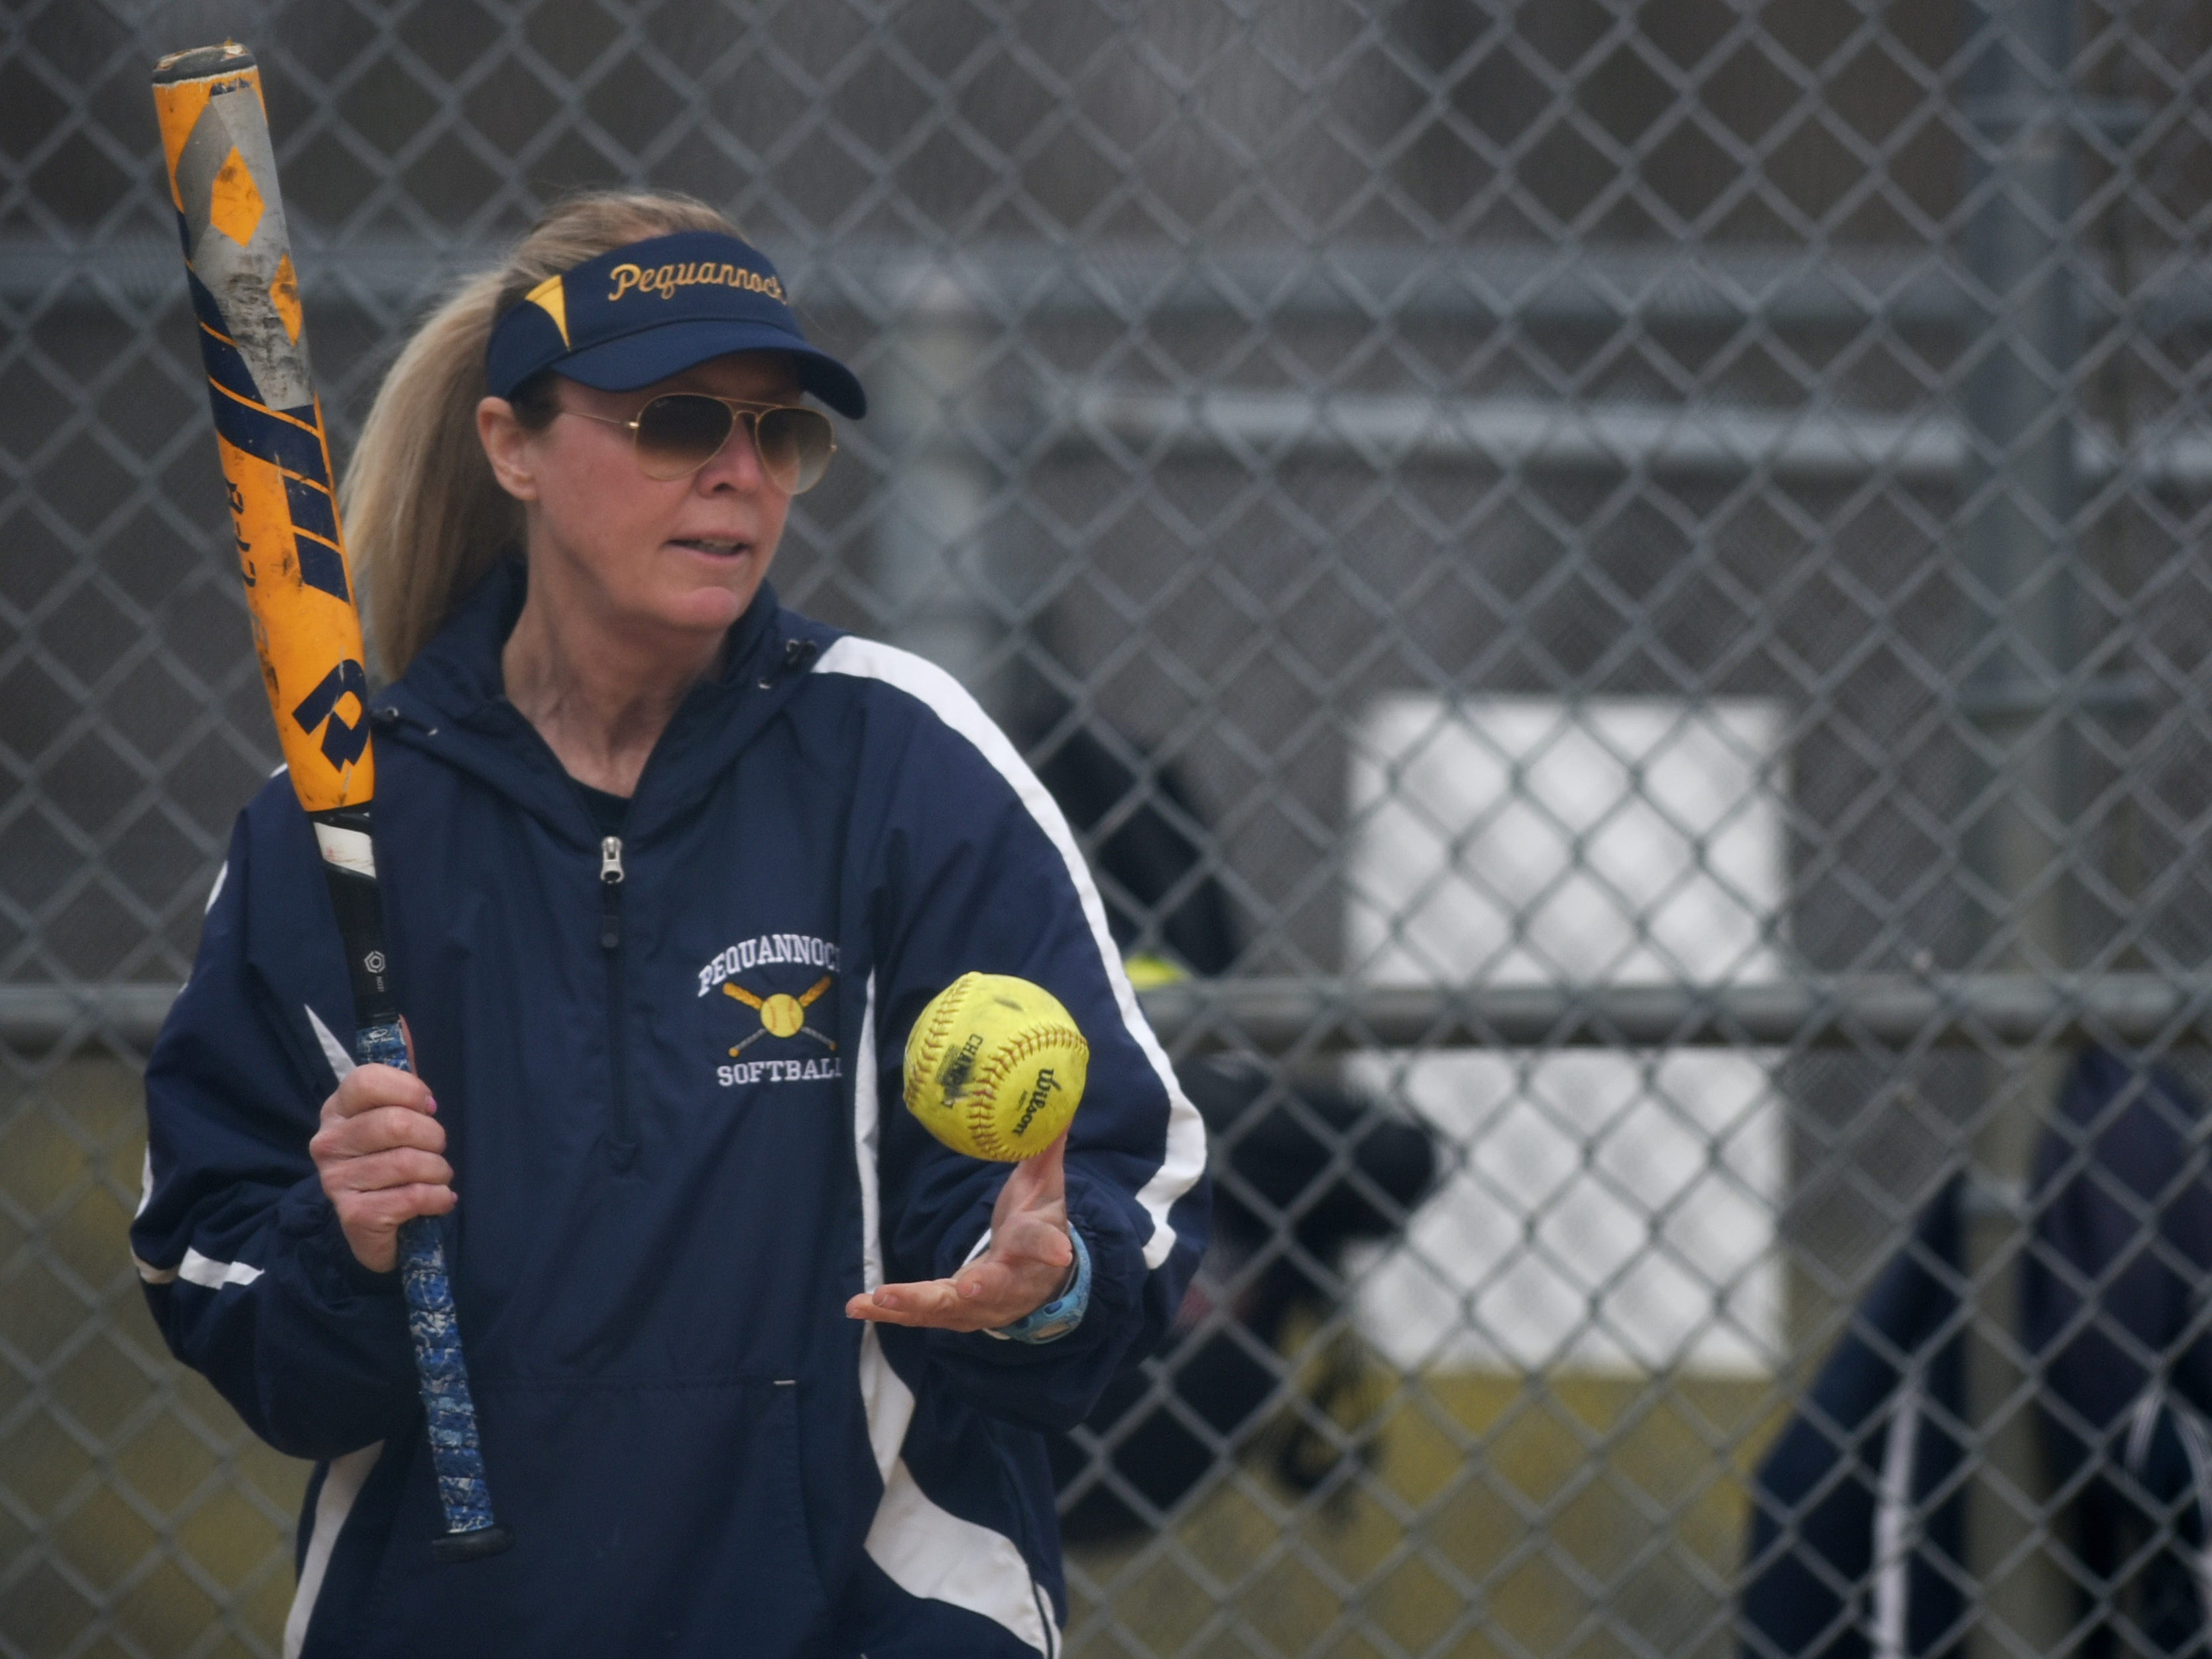 Pequannock at Kinnelon softball game in Kinnelon on Friday April 12, 2019. Pequannock coach Maryann Goodwin helps the girls warm up.